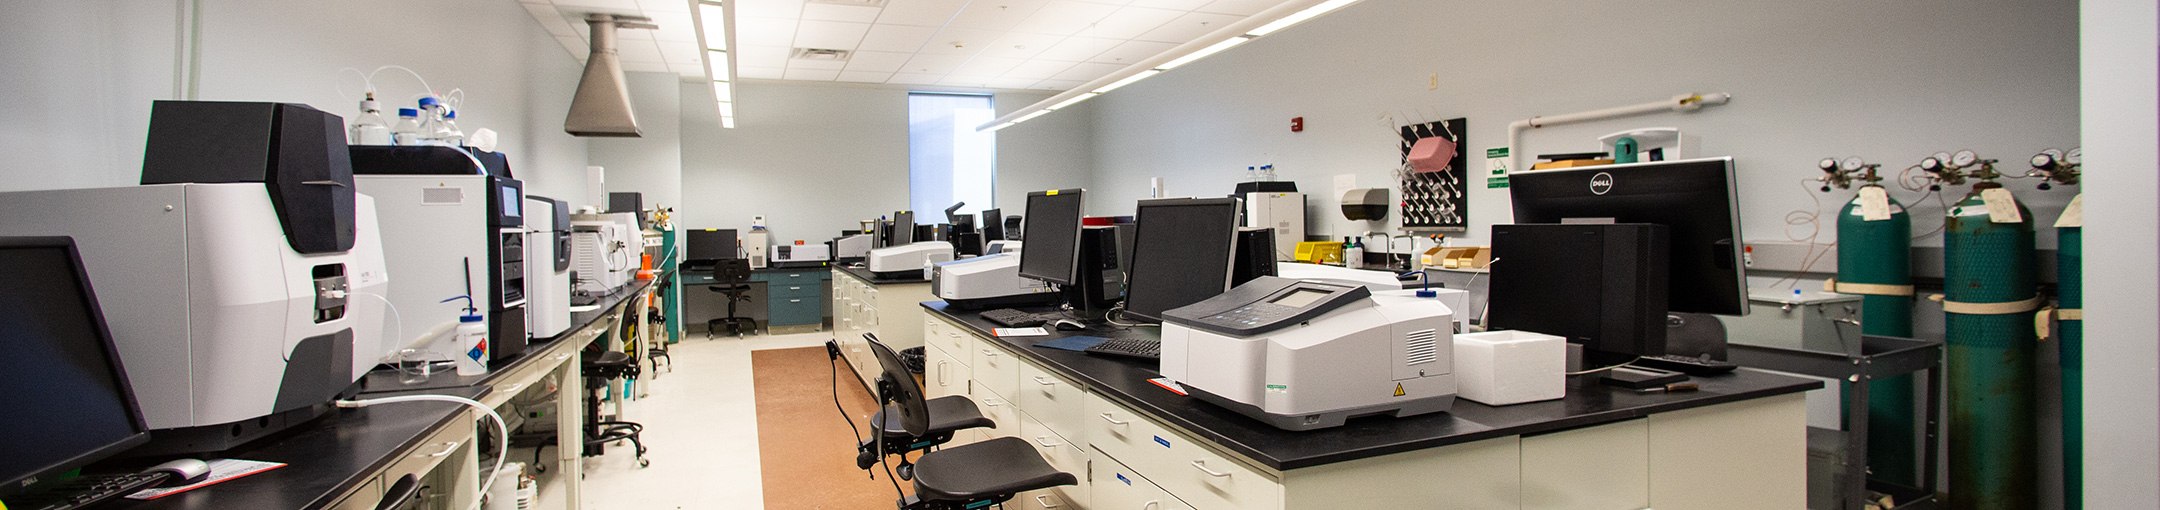 Lab equipment in the Analytical lab.